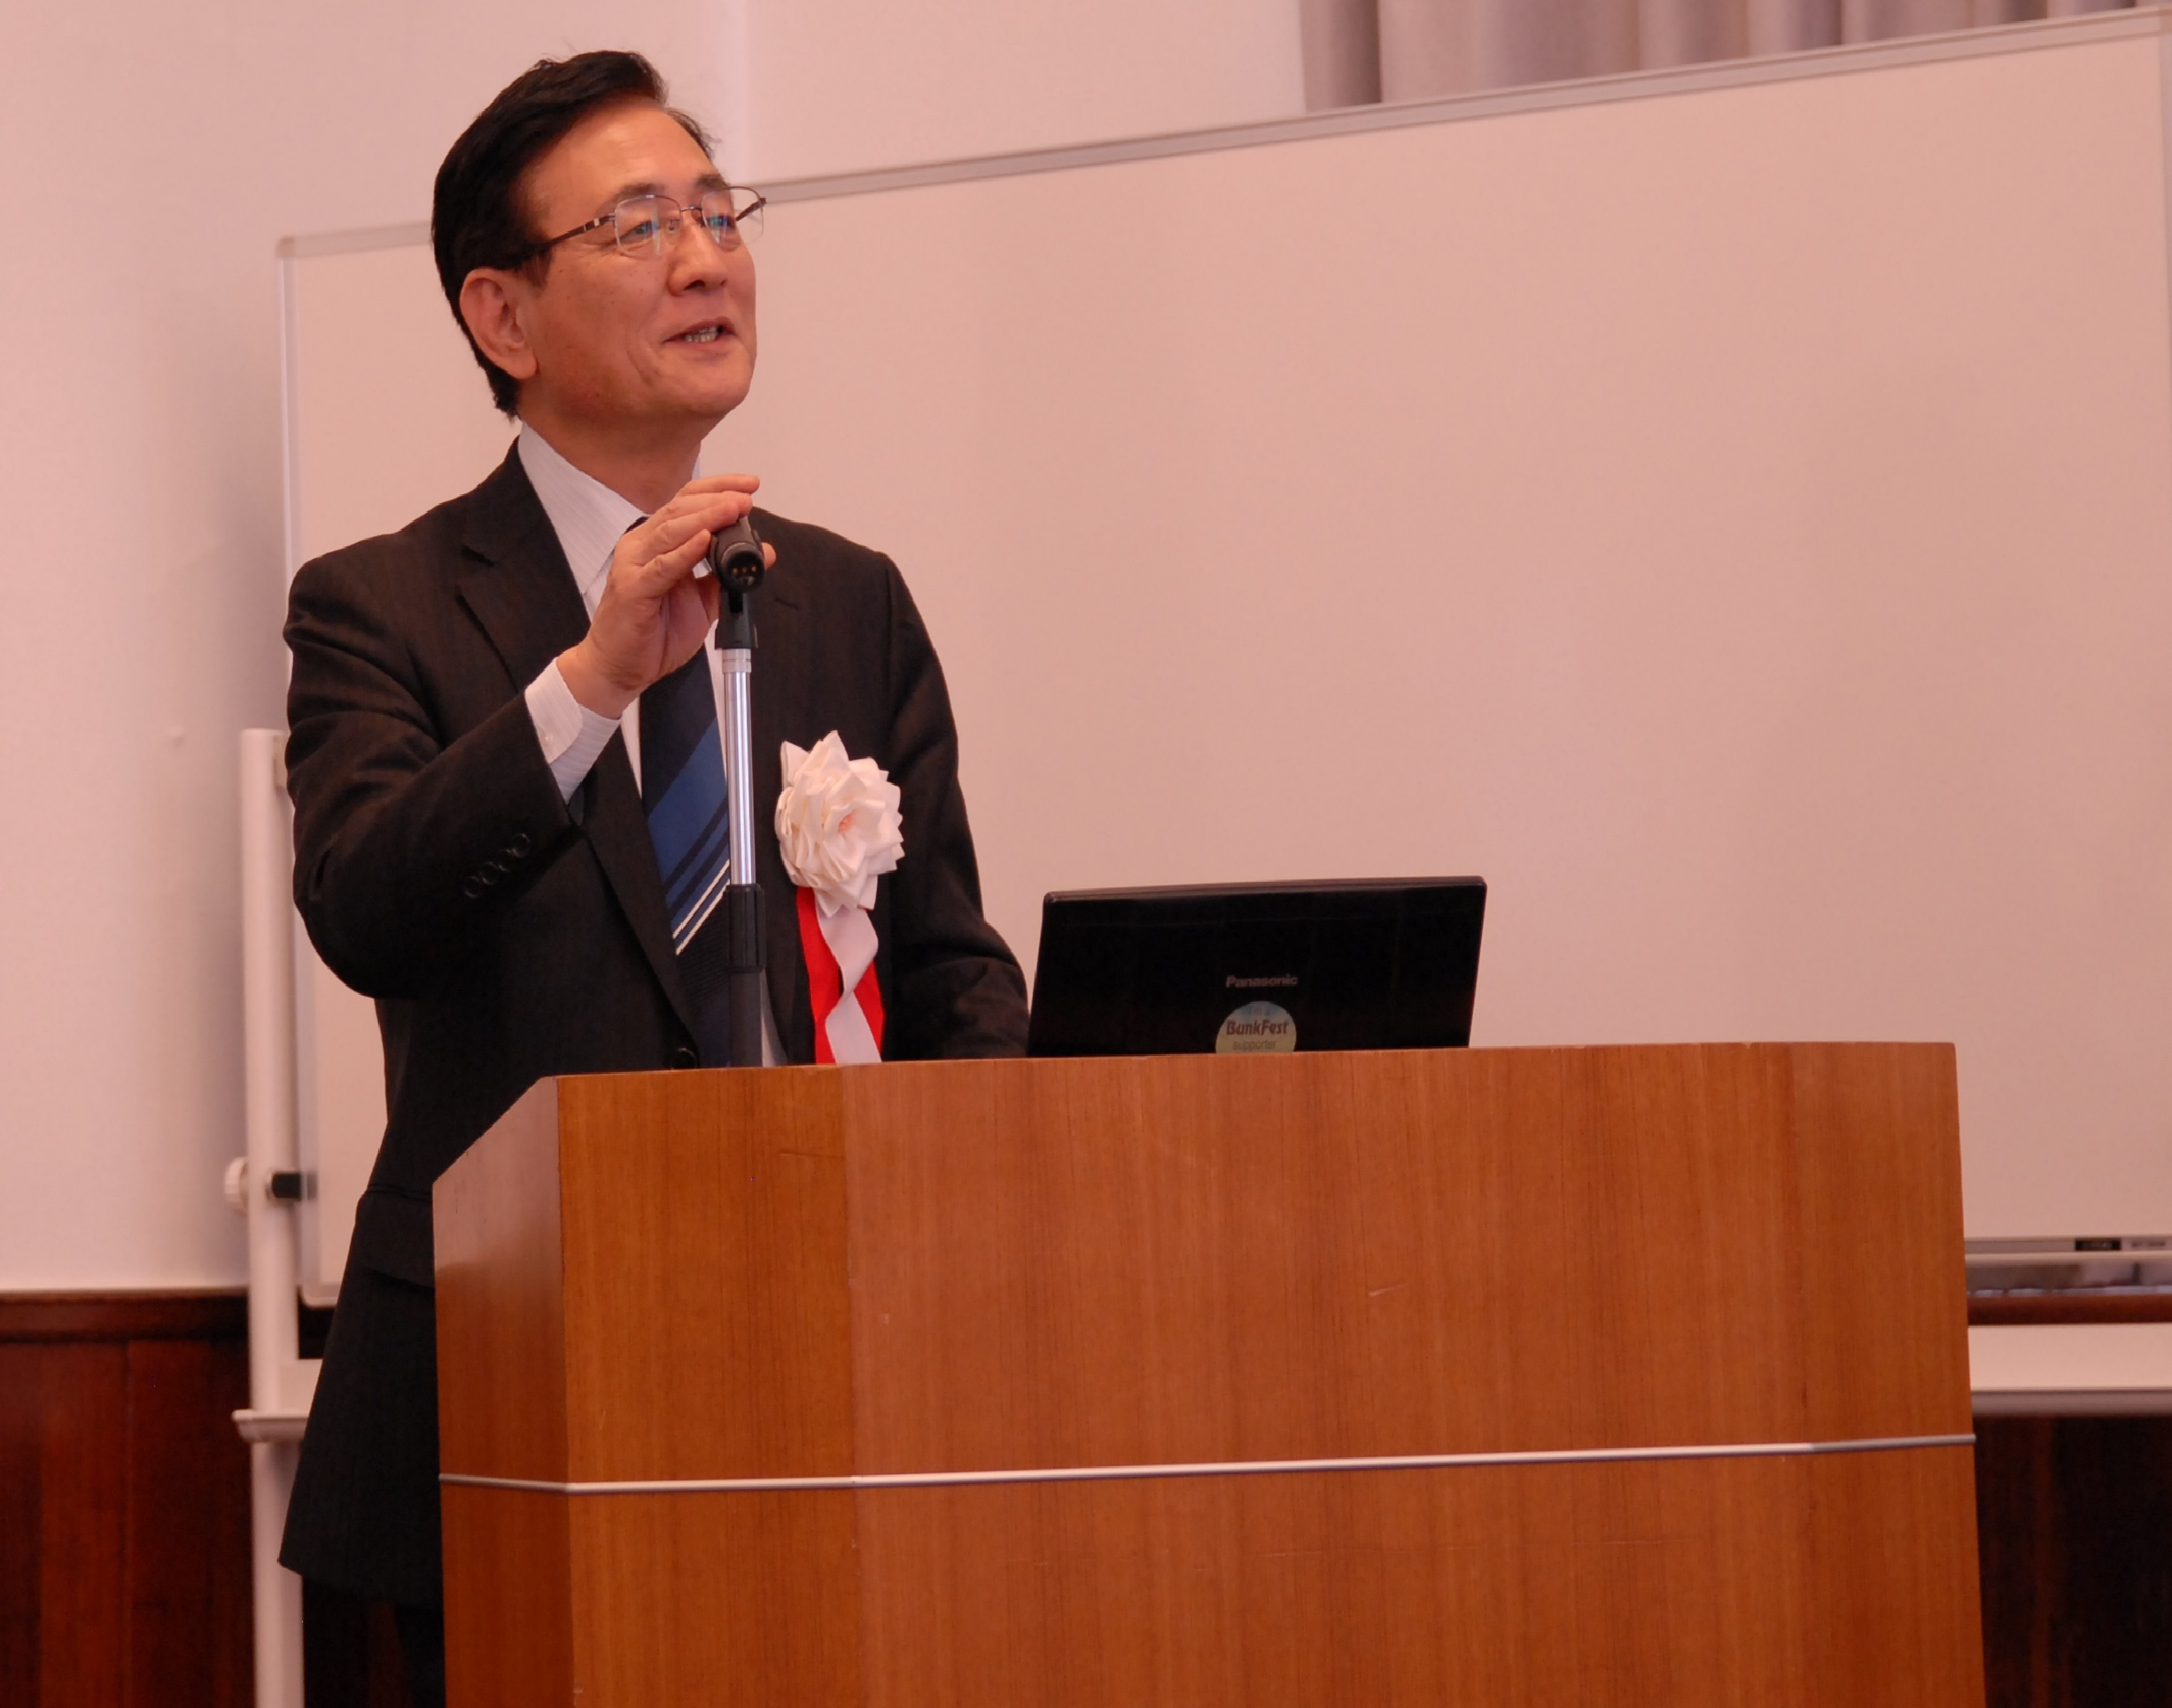 Dr. NagahiroMinato, Executive Vice President of Kyoto University,